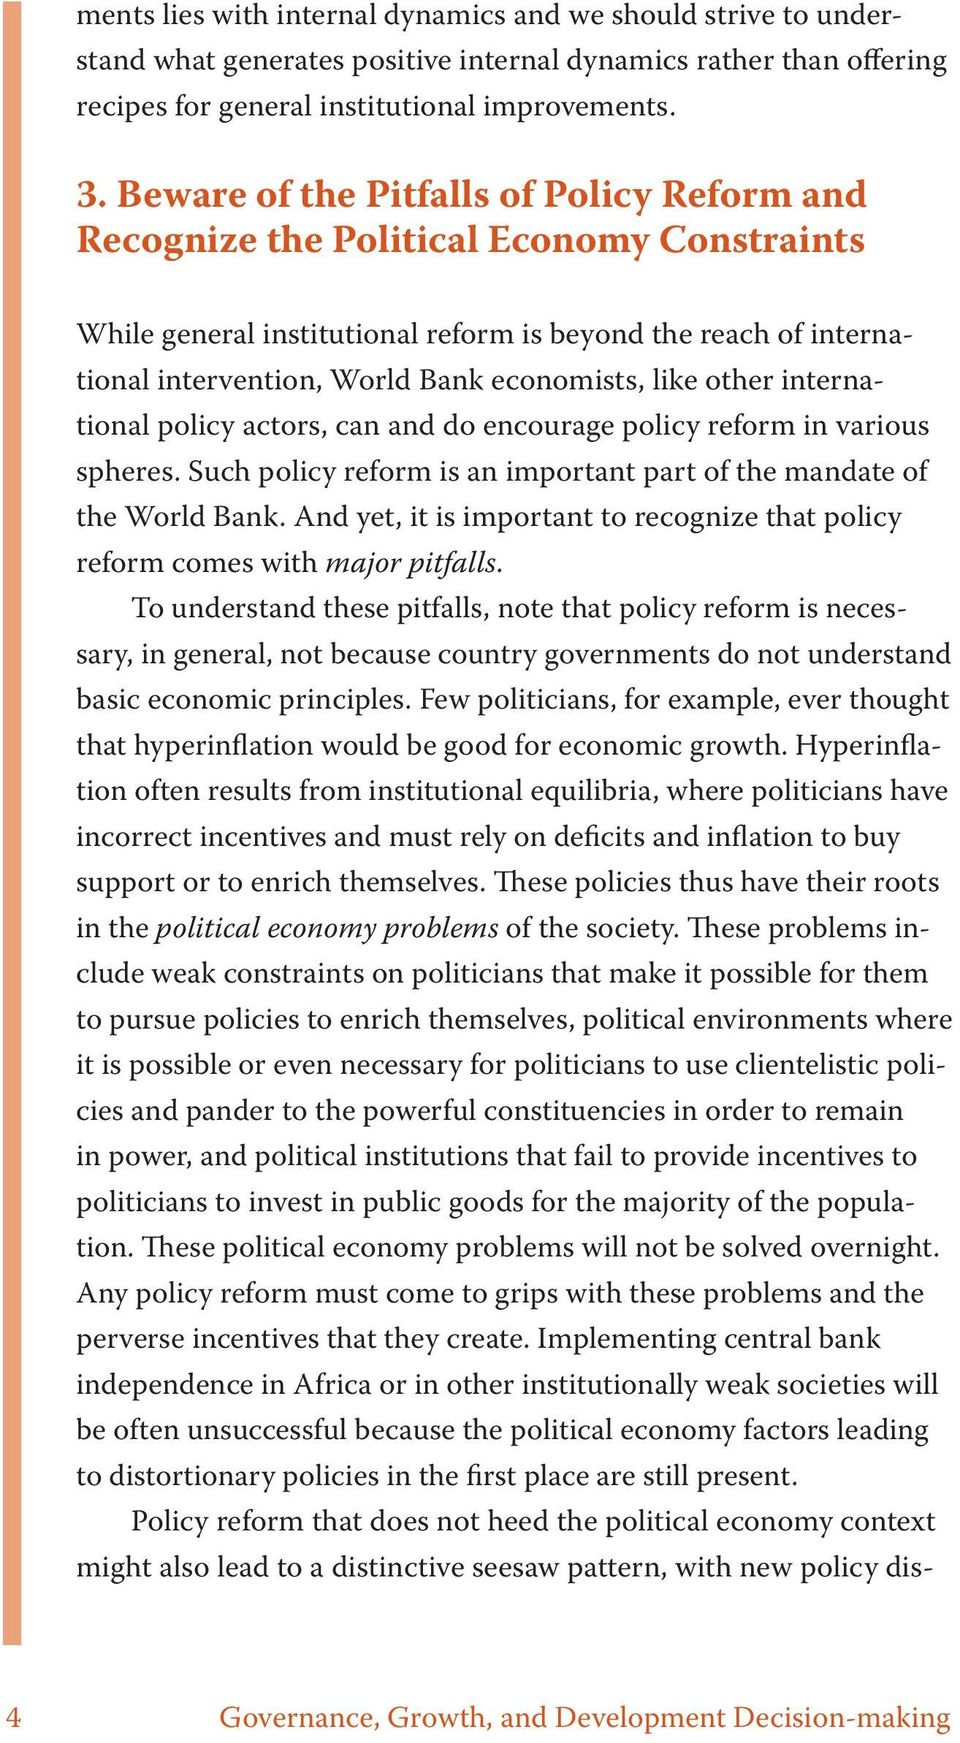 like other international policy actors, can and do encourage policy reform in various spheres. Such policy reform is an important part of the mandate of the World Bank.